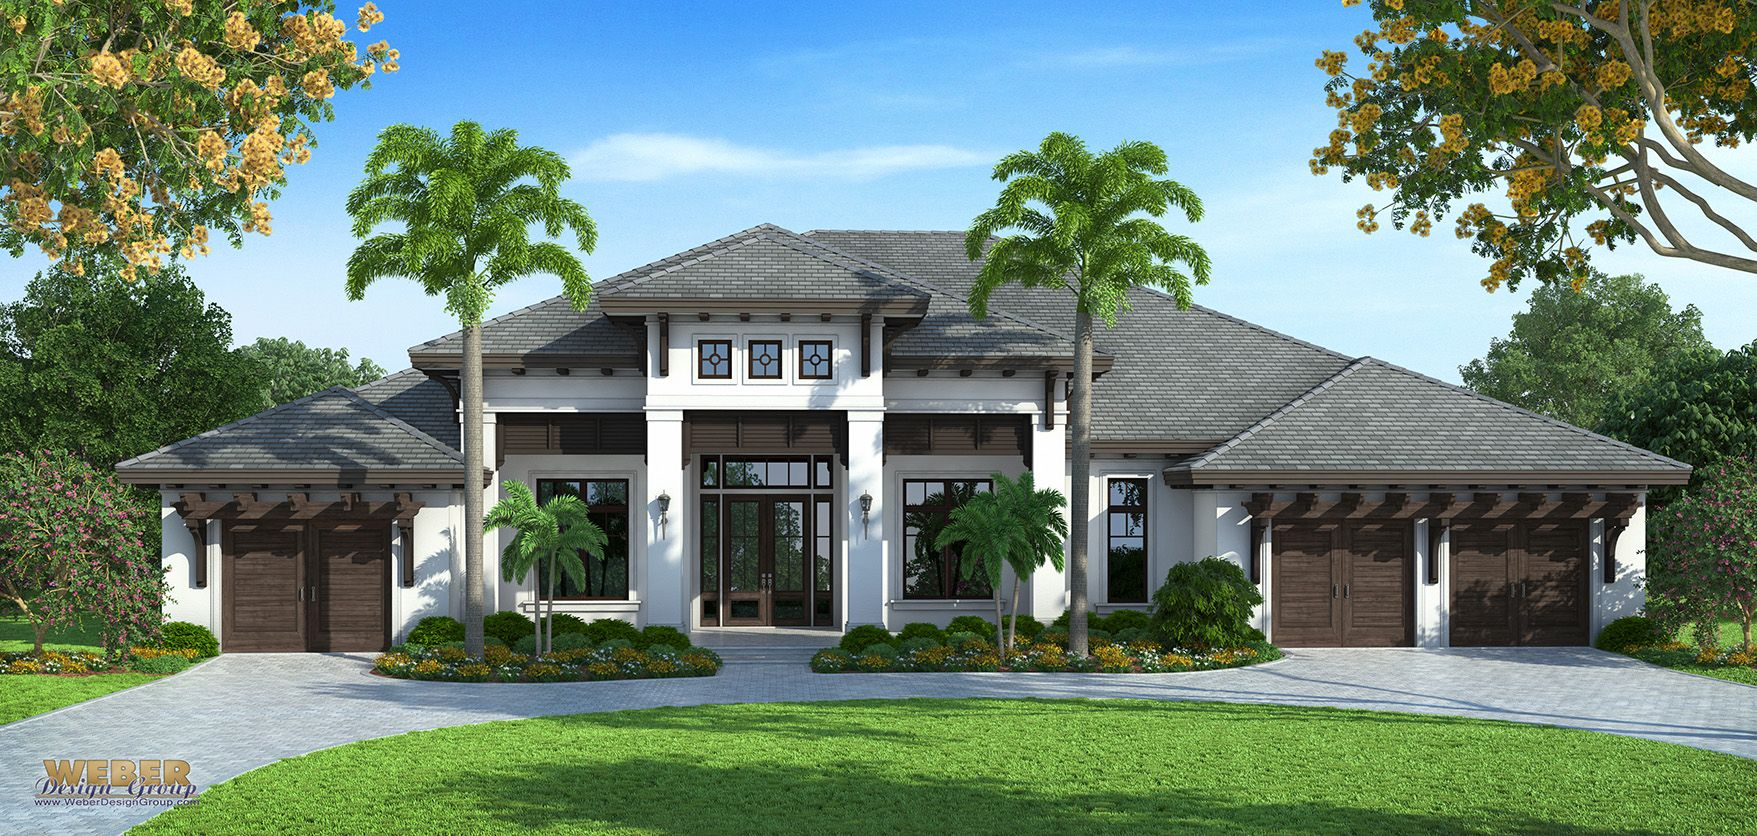 Transitional west indies style house plans by weber design for Transitional house plans